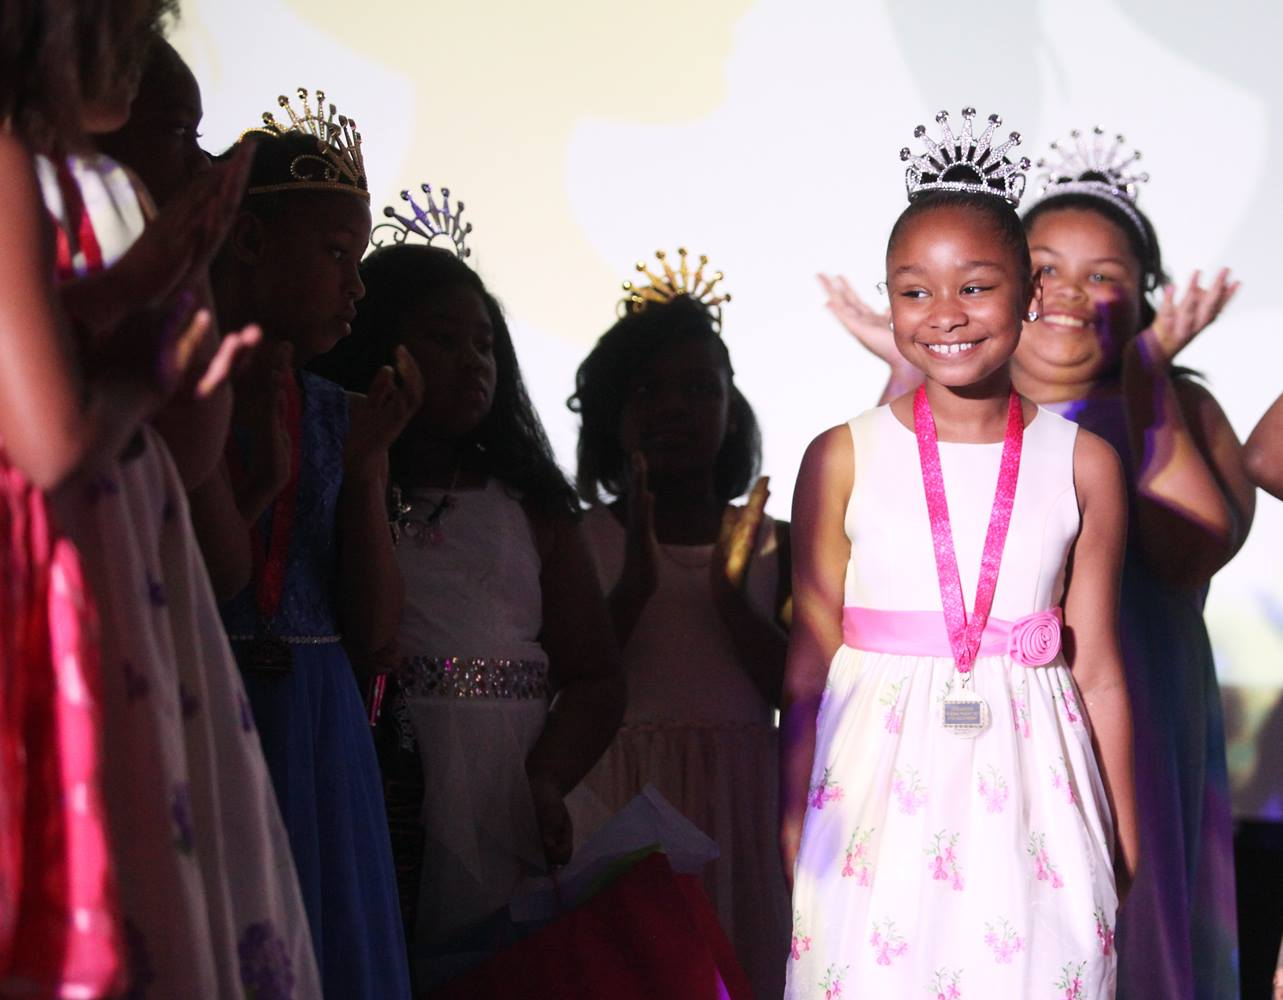 Aleena Simmons smiles as she is announced the third annual Little Miss Elite.